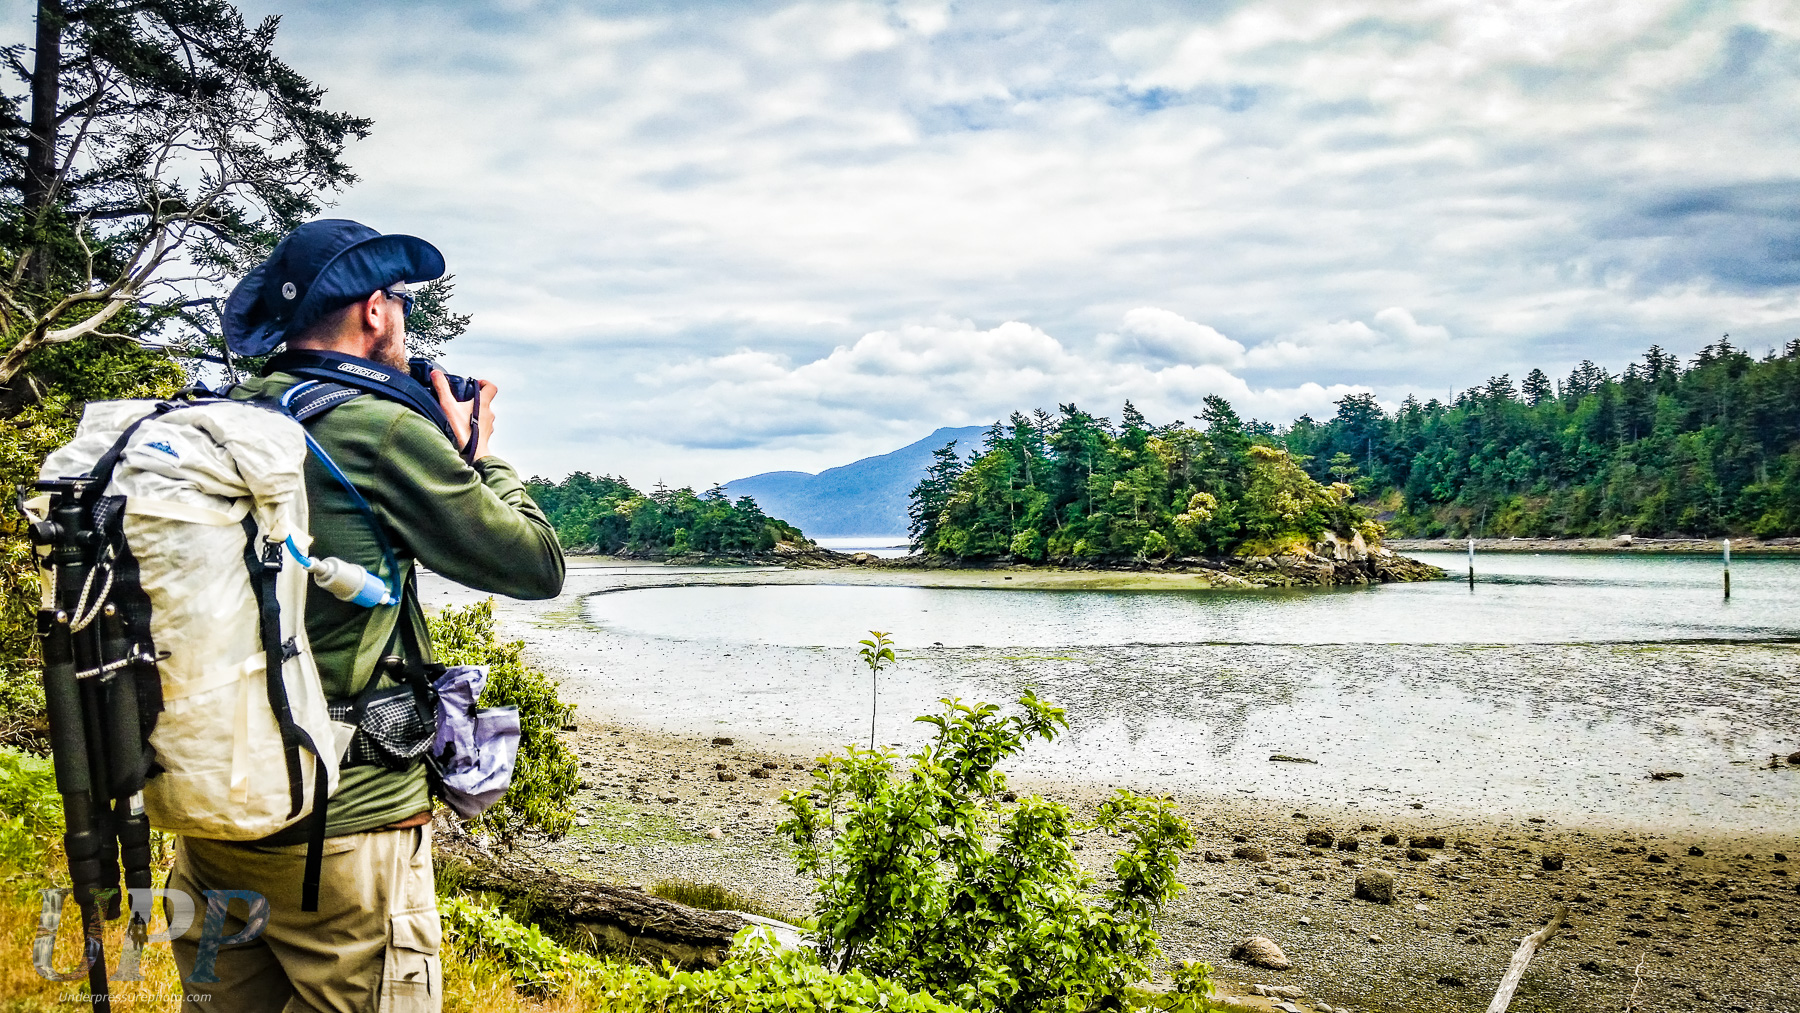 Scott McGee photographing Fossil Bay. Photo by CrtrGrl.